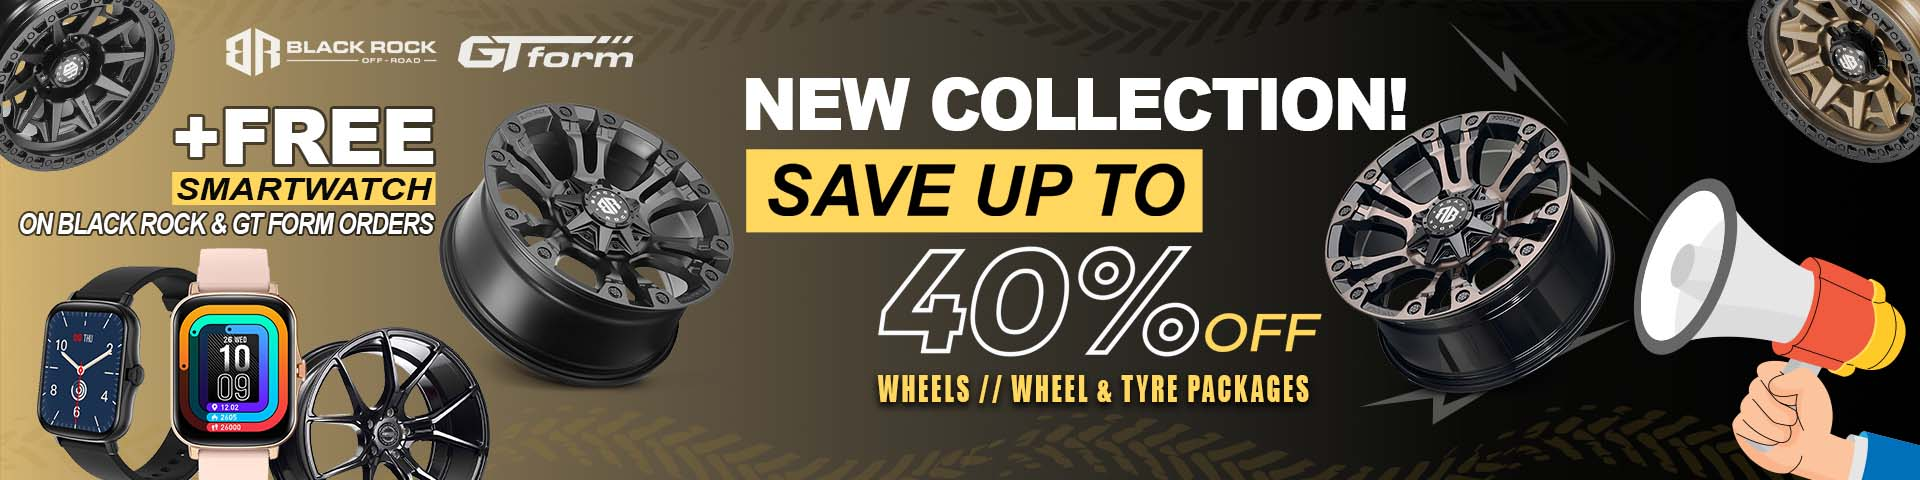 wheel and tyre packages buy rims and tyres